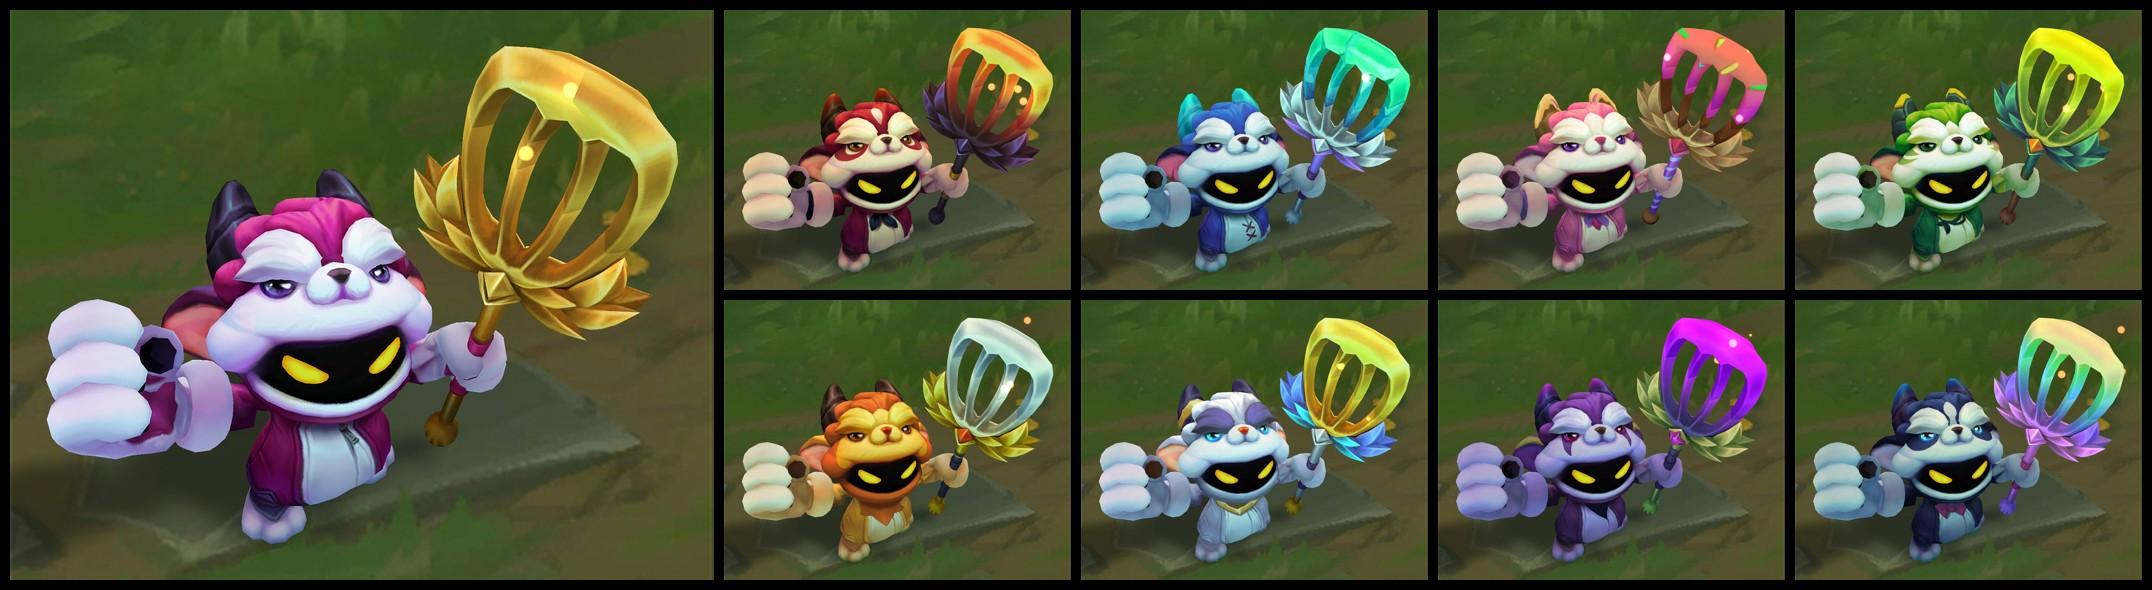 Patch 10 7 Notes League of legends stats and data aram patch 10.25 preseason. patch 10 7 notes